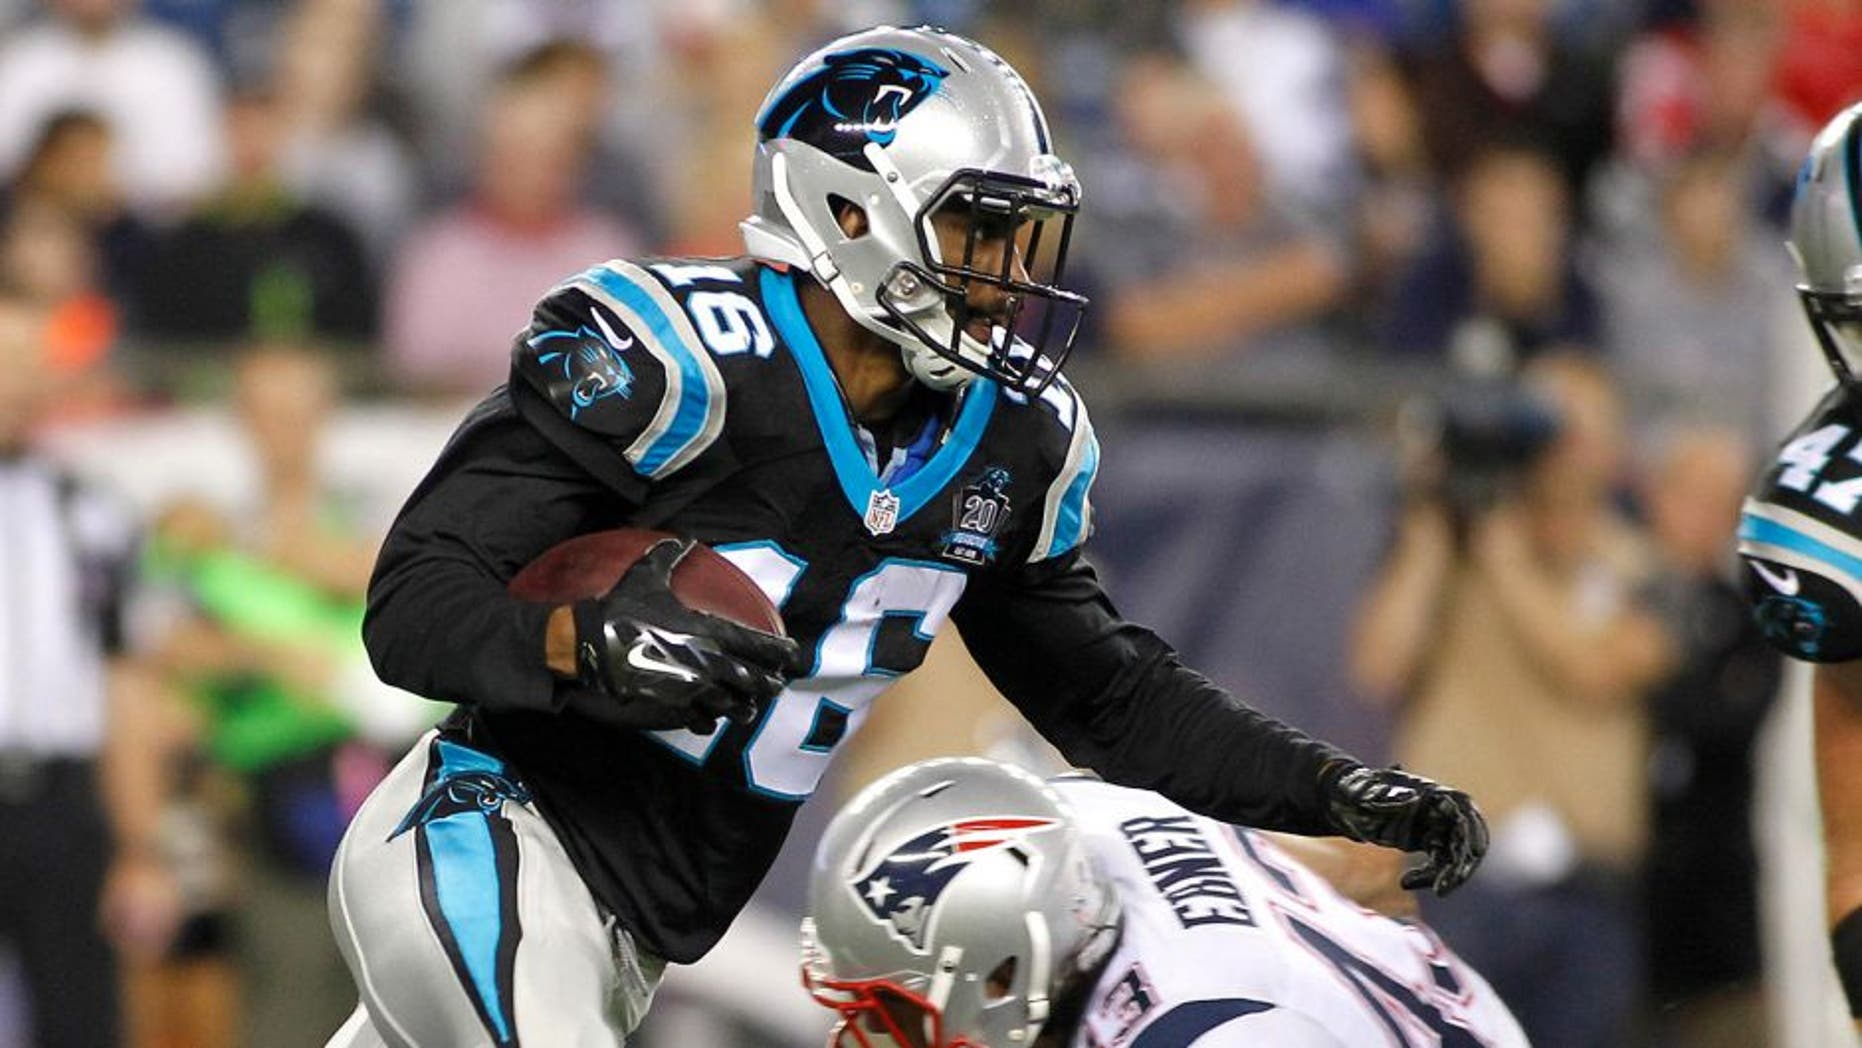 Aug 22, 2014; Foxborough, MA, USA; Carolina Panthers wide receiver Philly Brown (16) runs against the New England Patriots during the first quarter at Gillette Stadium. Mandatory Credit: Stew Milne-USA TODAY Sports